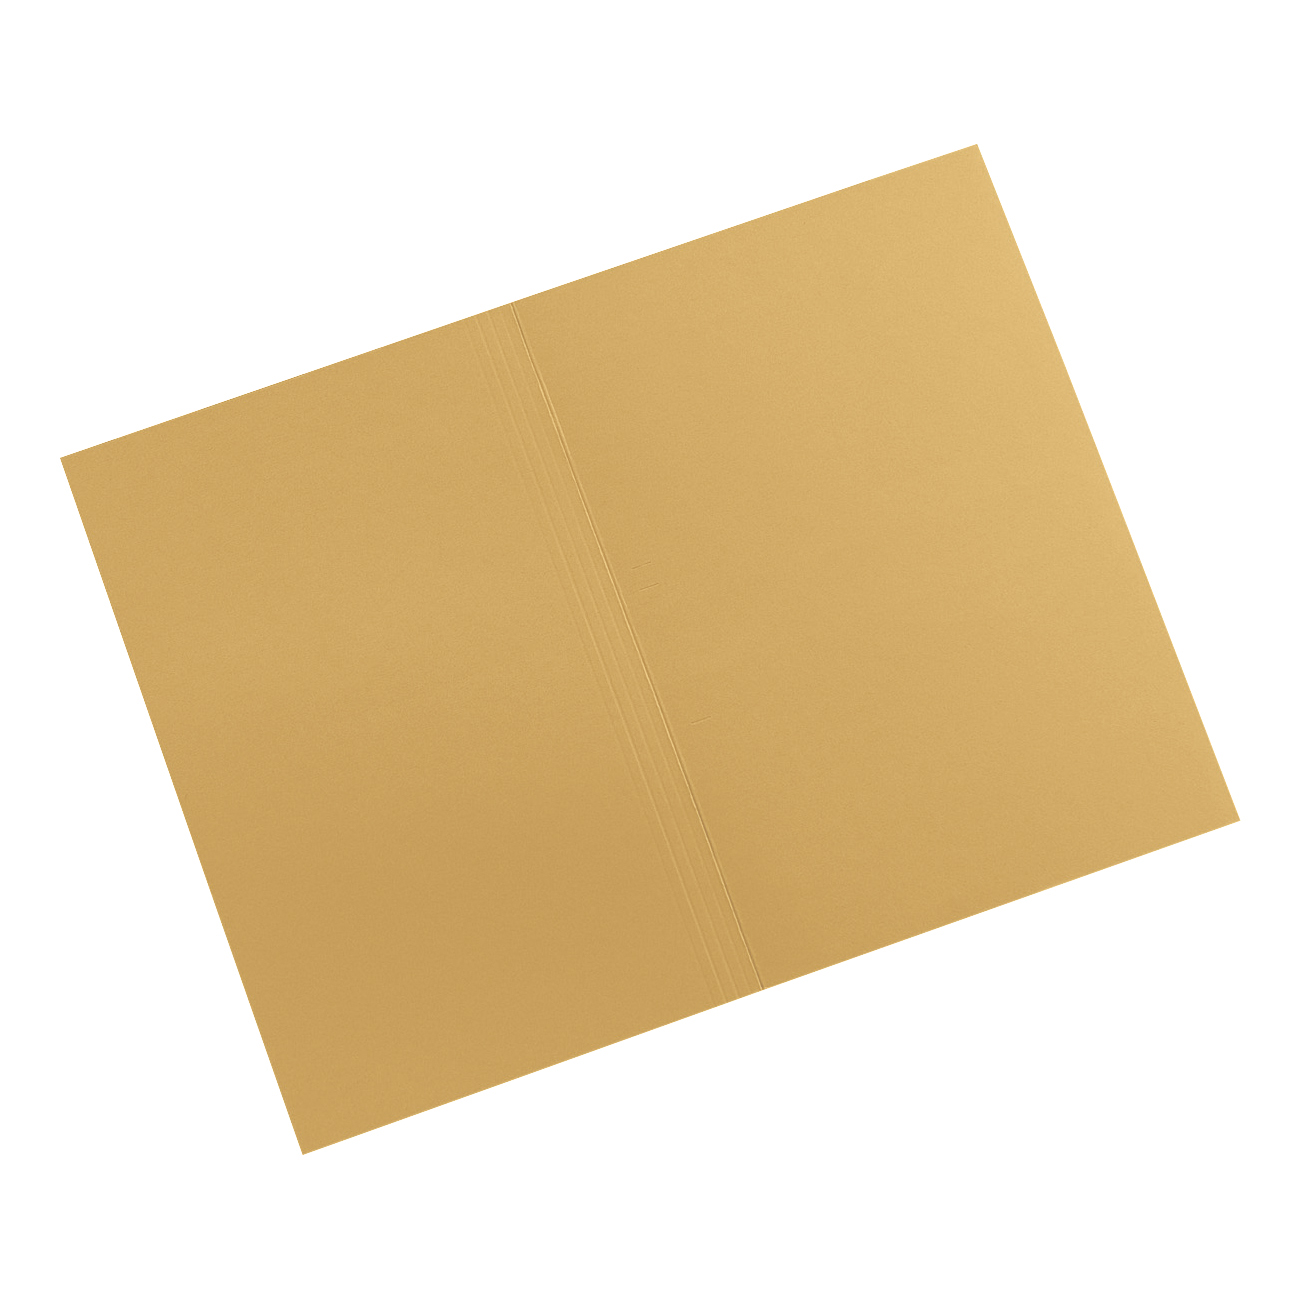 5 Star Elite Square Cut Folders 315gsm Heavyweight Manilla Foolscap Yellow Pack 100